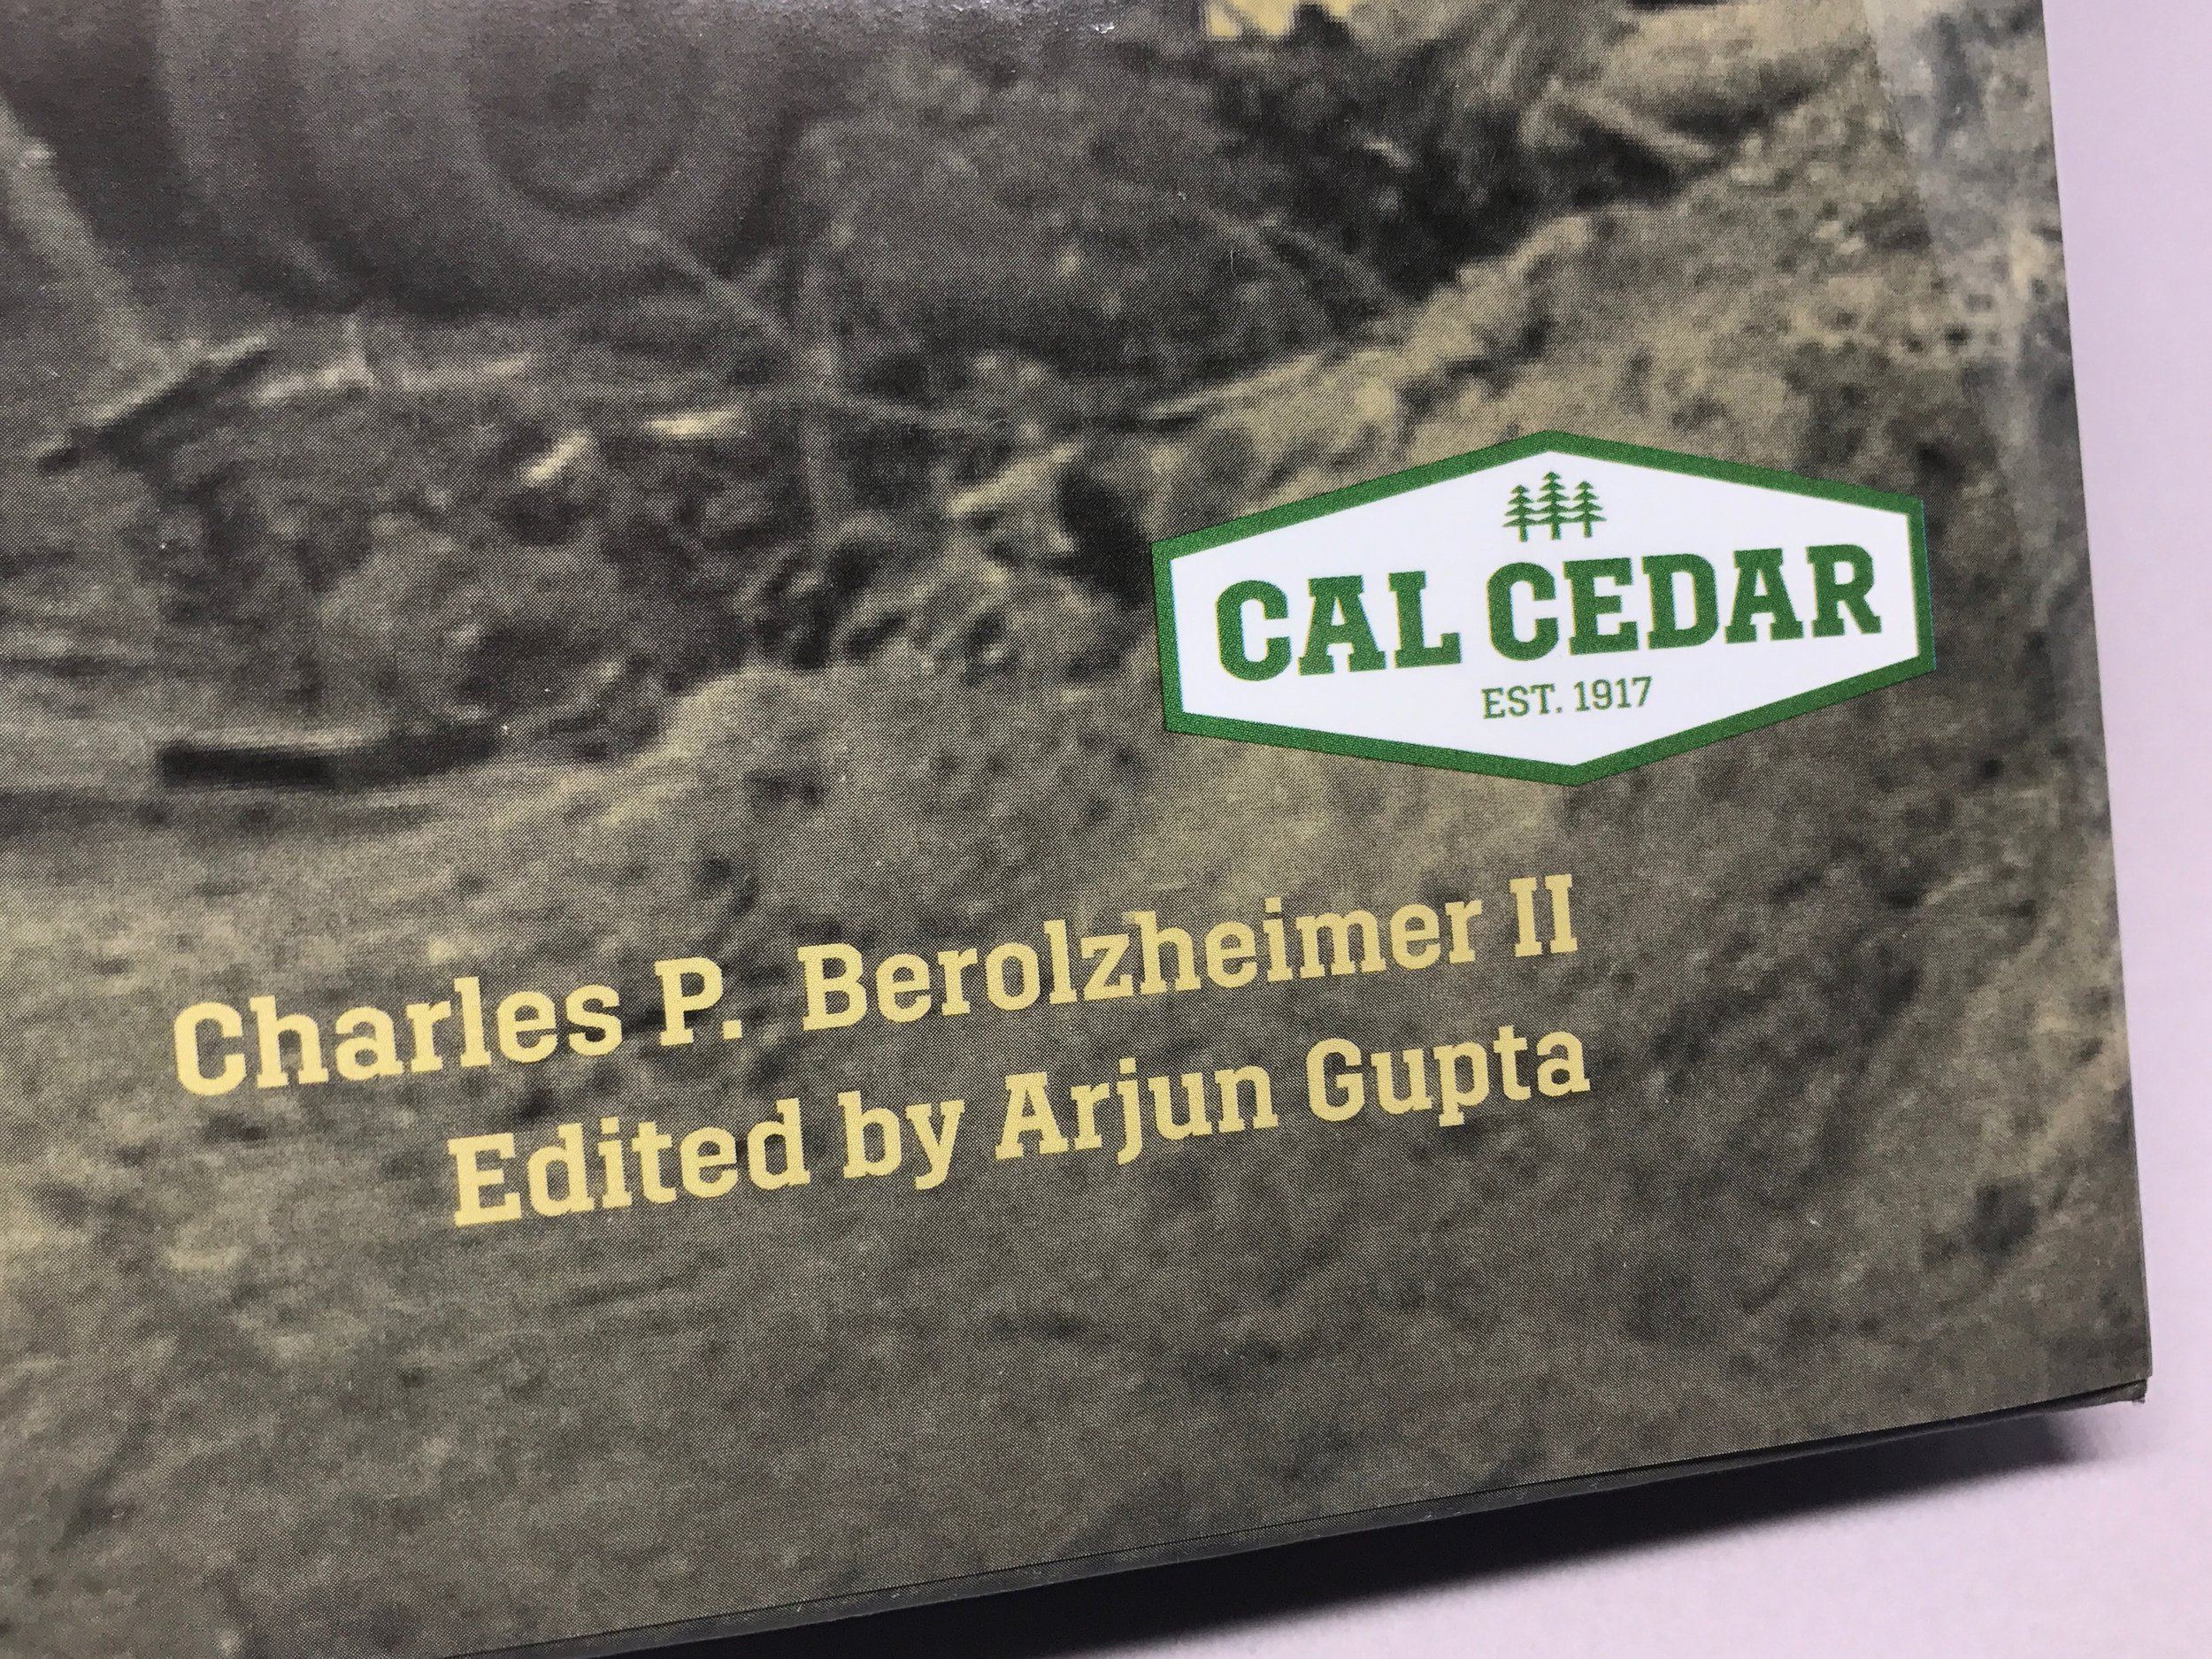 story-of-cal-cedar-book-3.jpg